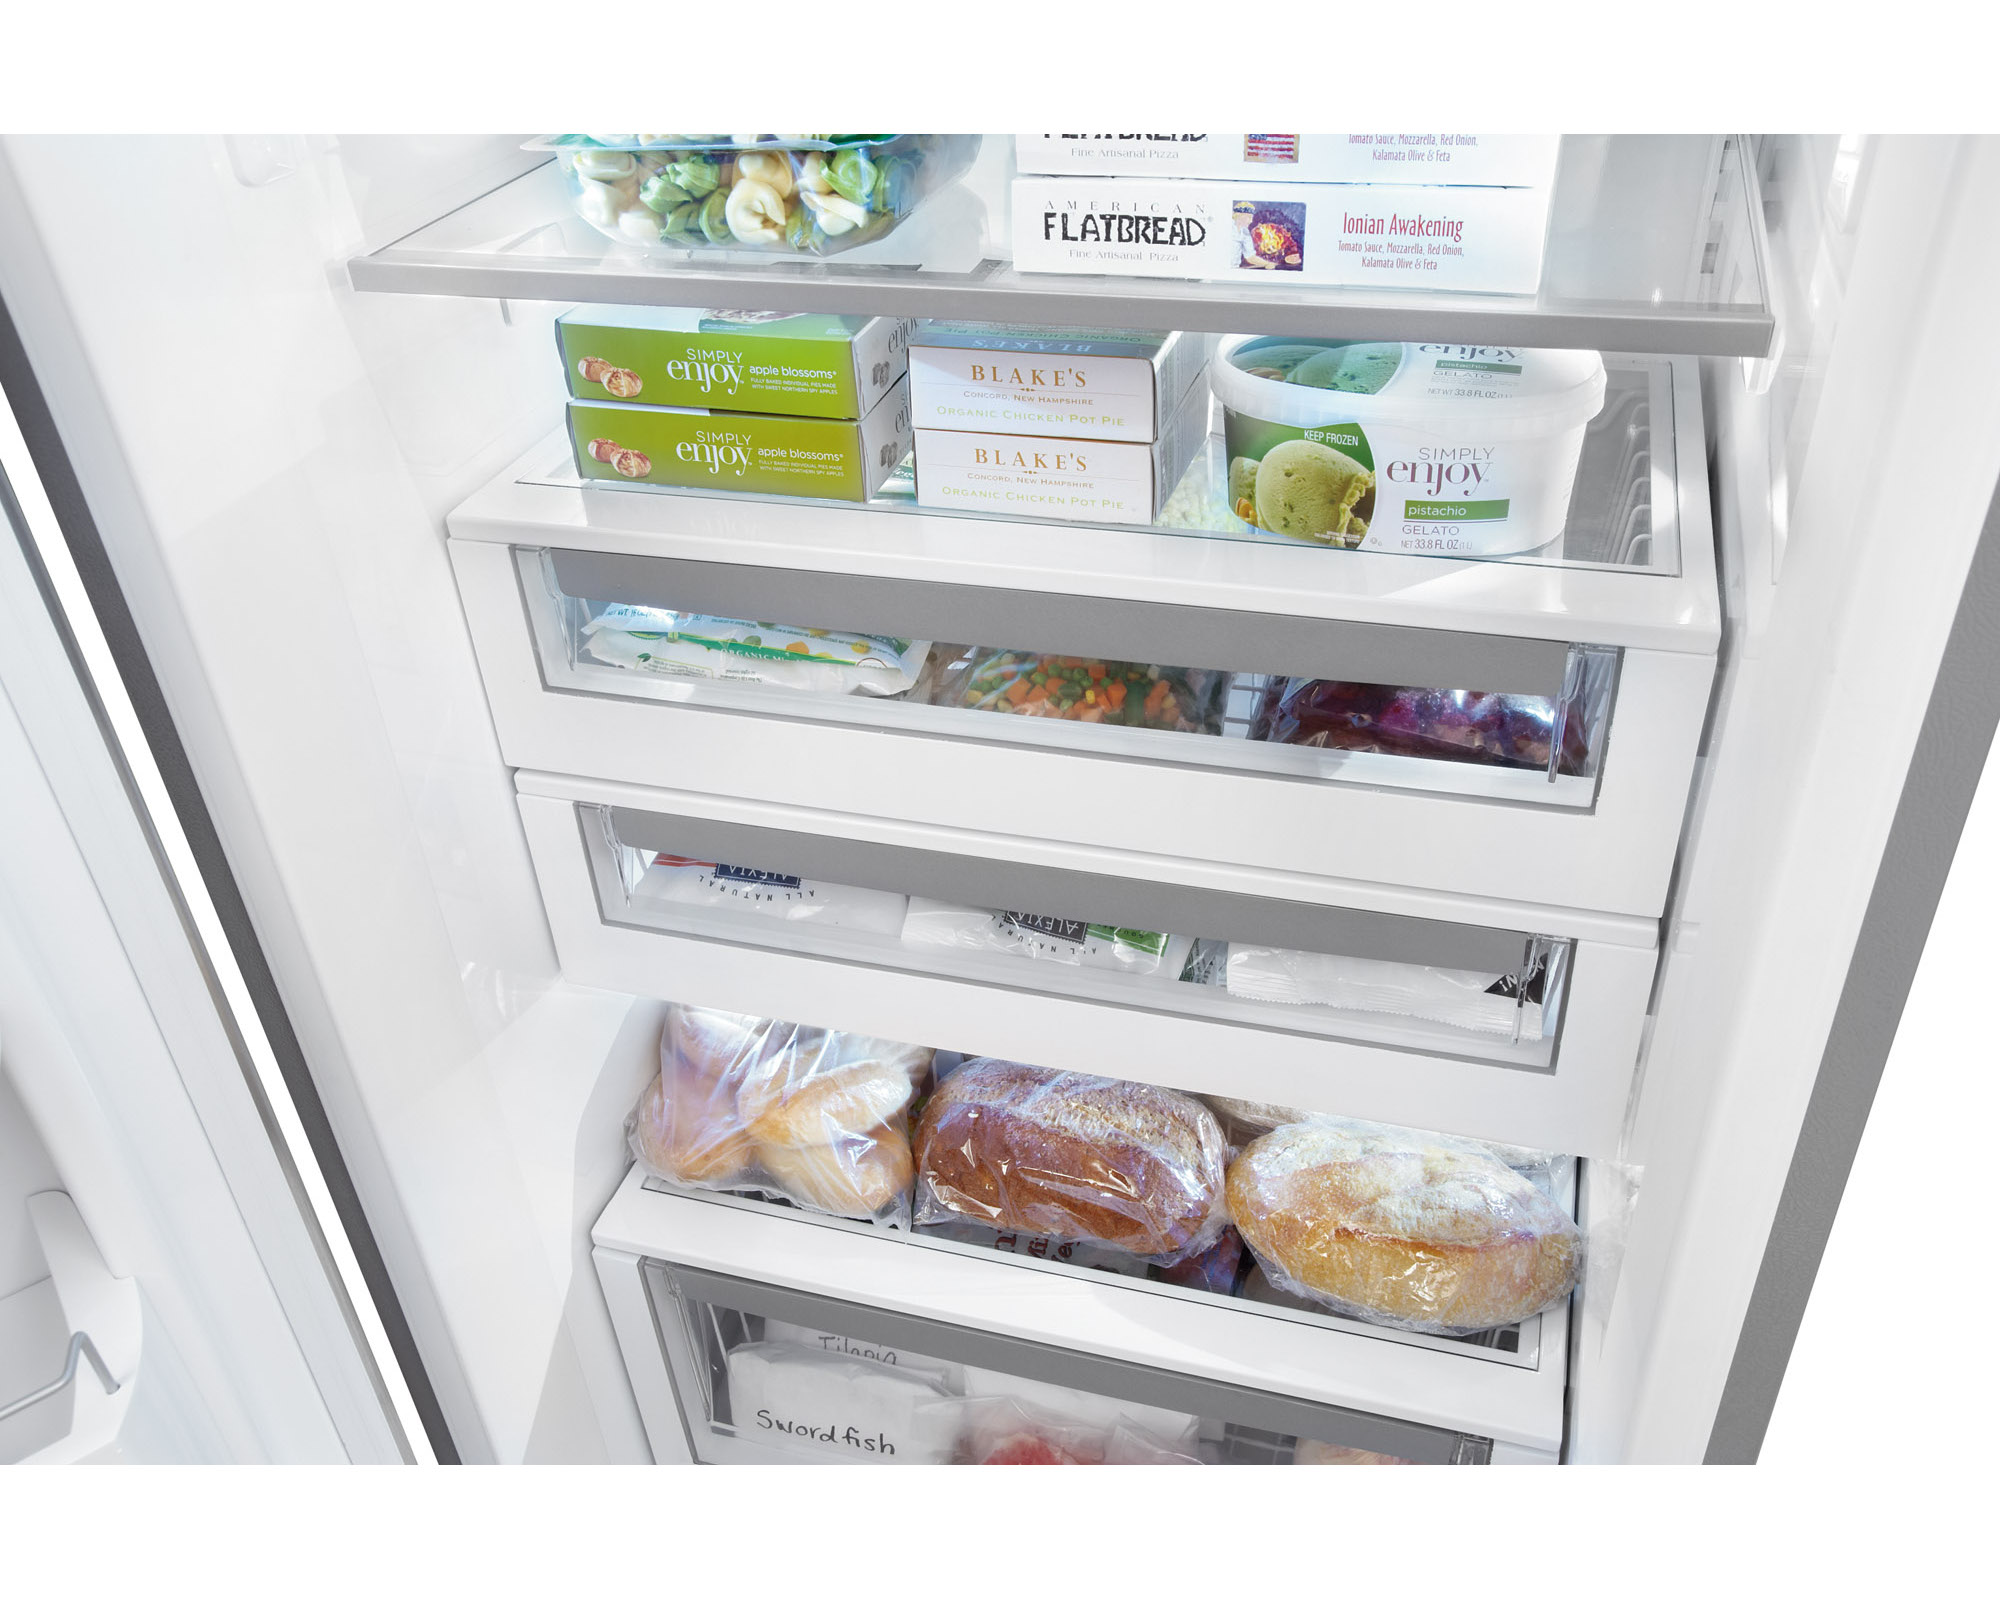 Electrolux EI32AF80QS 18.6 cu. ft. Upright Freezer - Stainless Steel